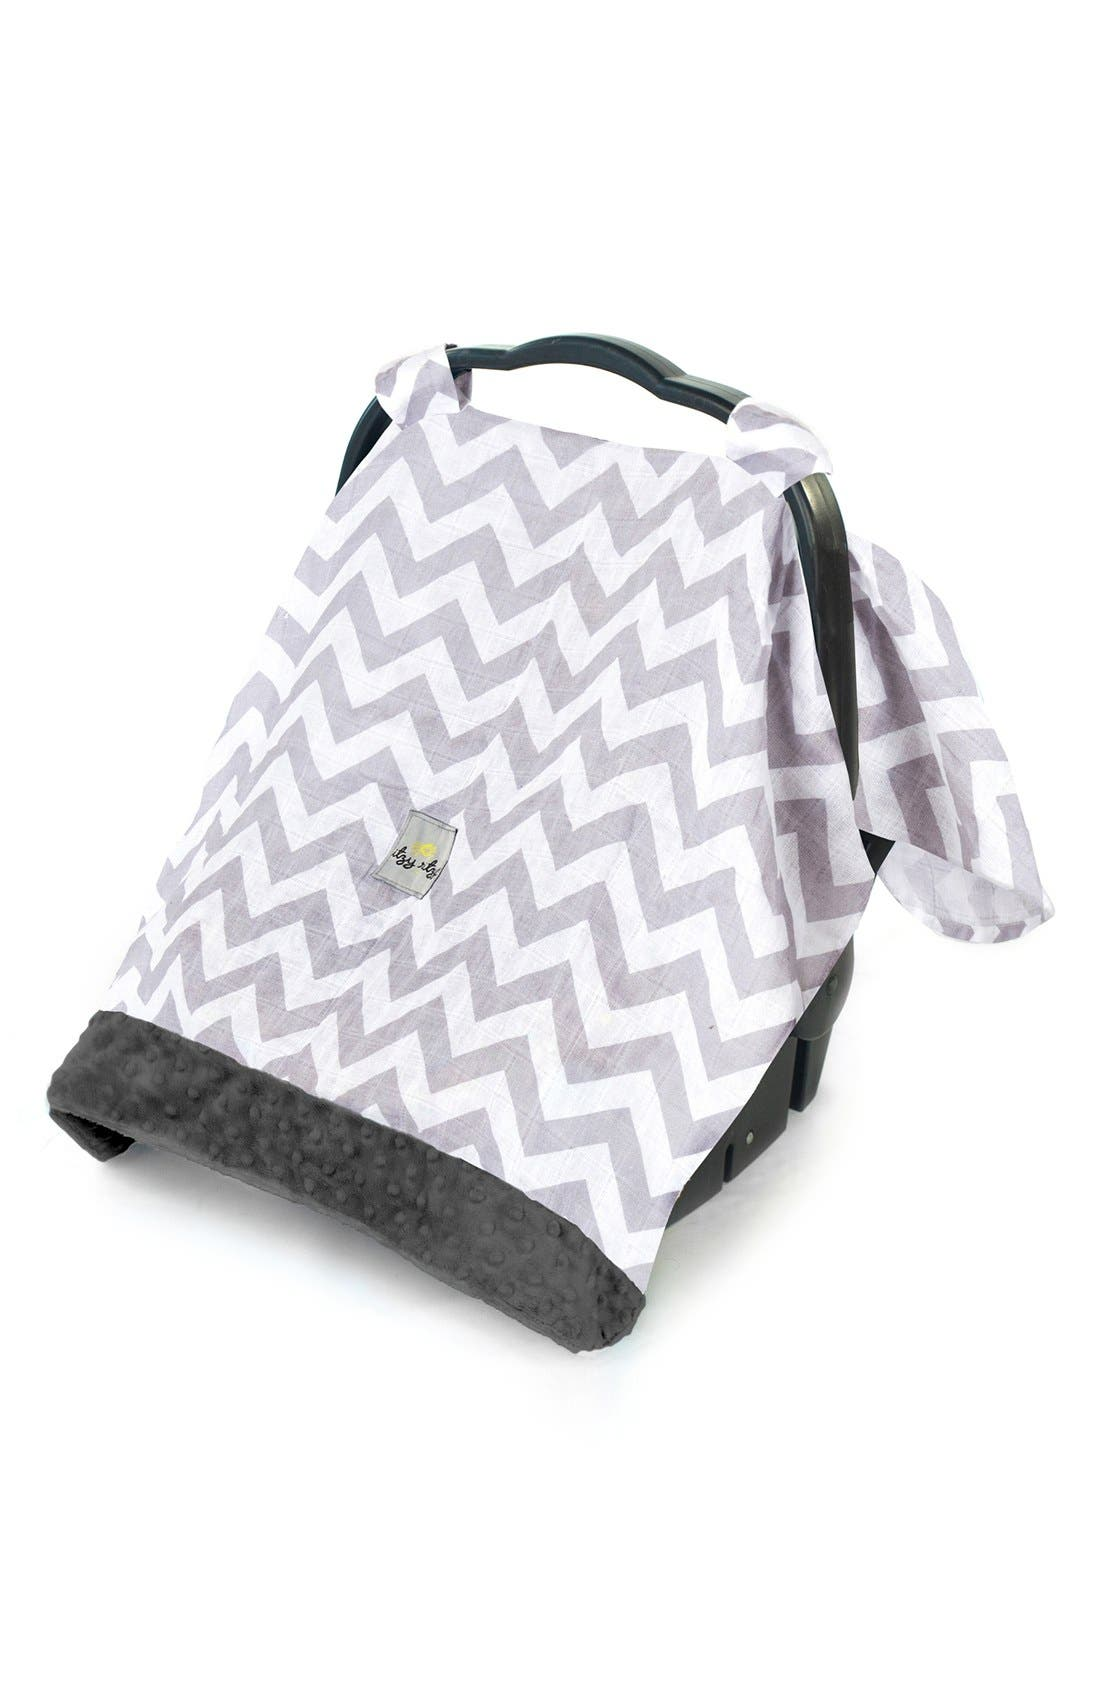 Alternate Image 1 Selected - Itzy Ritzy 'Cozy Happens™' Muslin Canopy & Tummy Time Mat